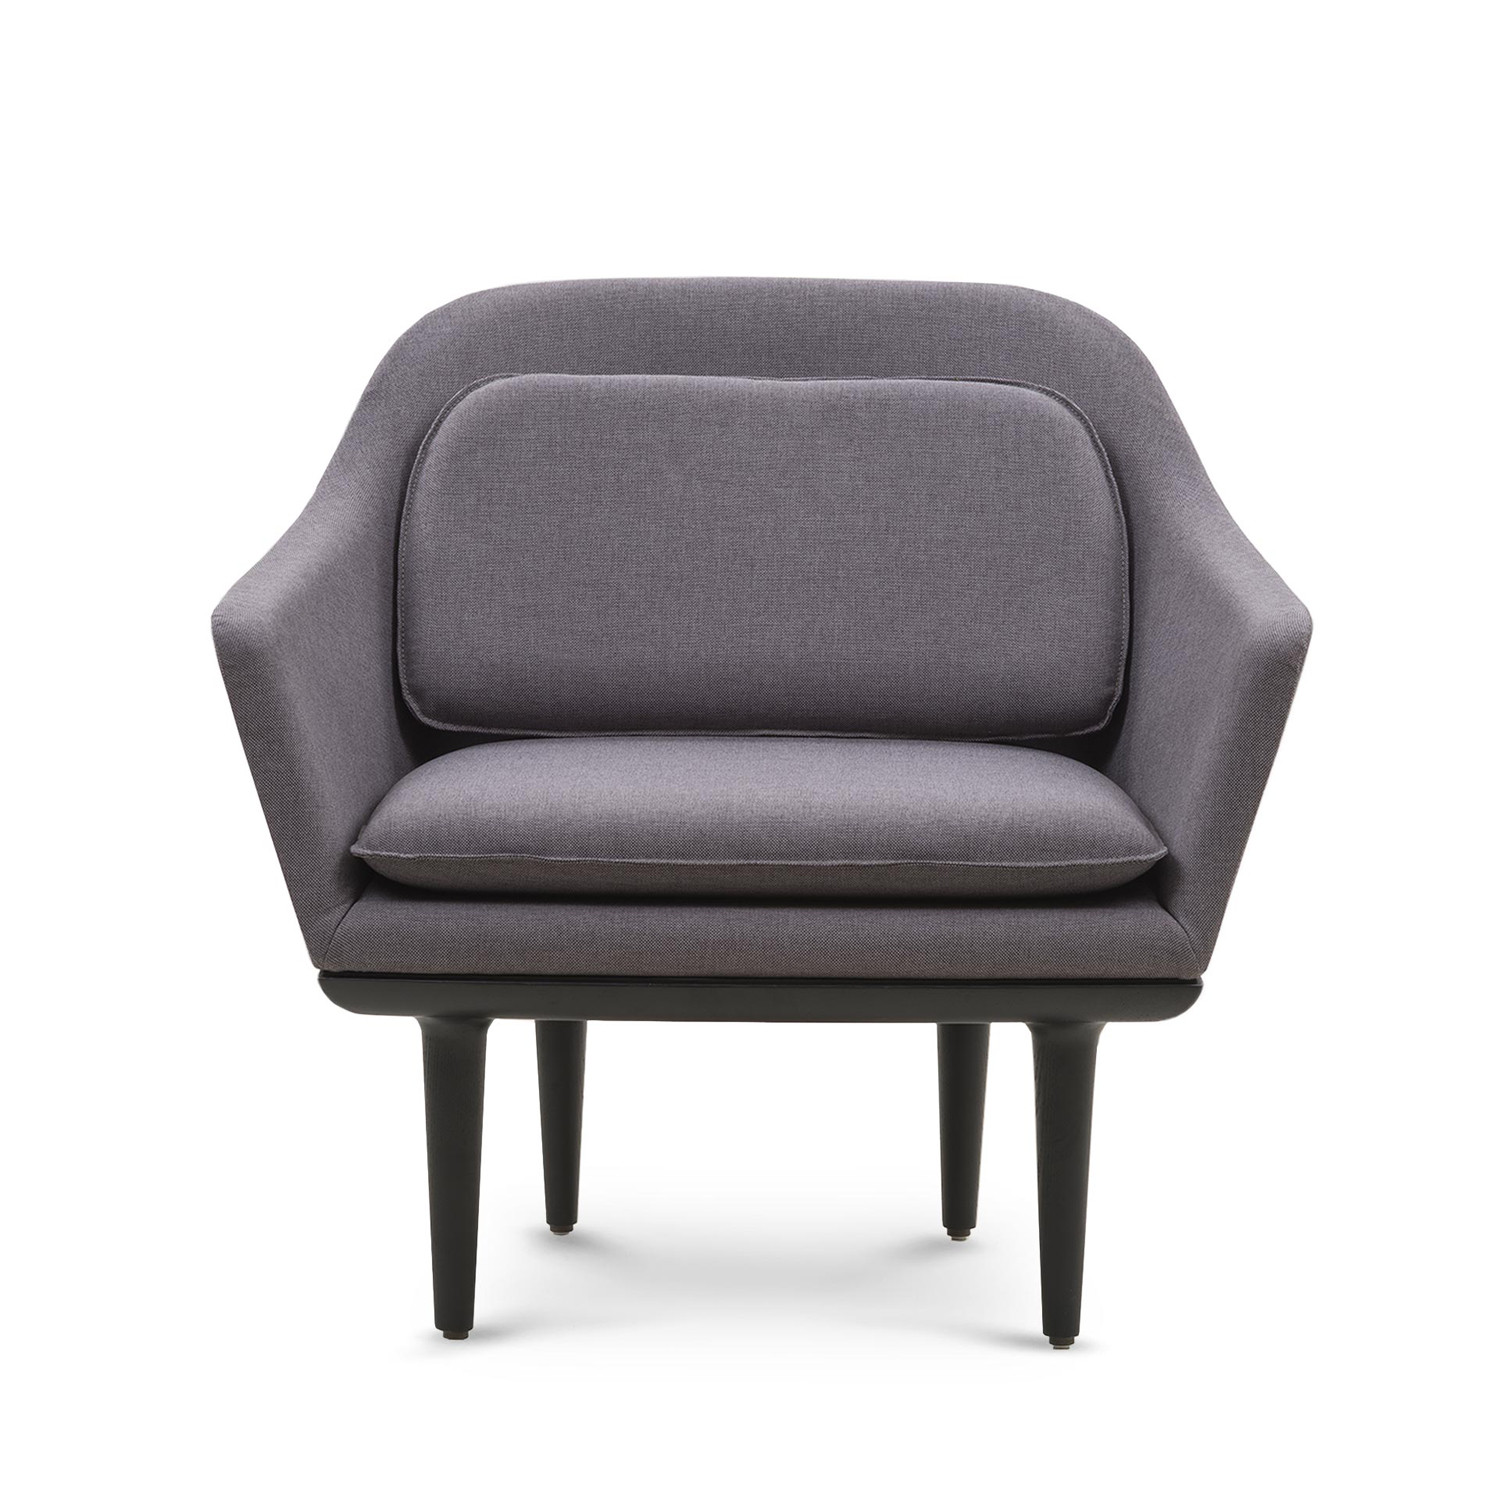 Lunar Lounge Chair Grey Stellar Works Touch of Modern